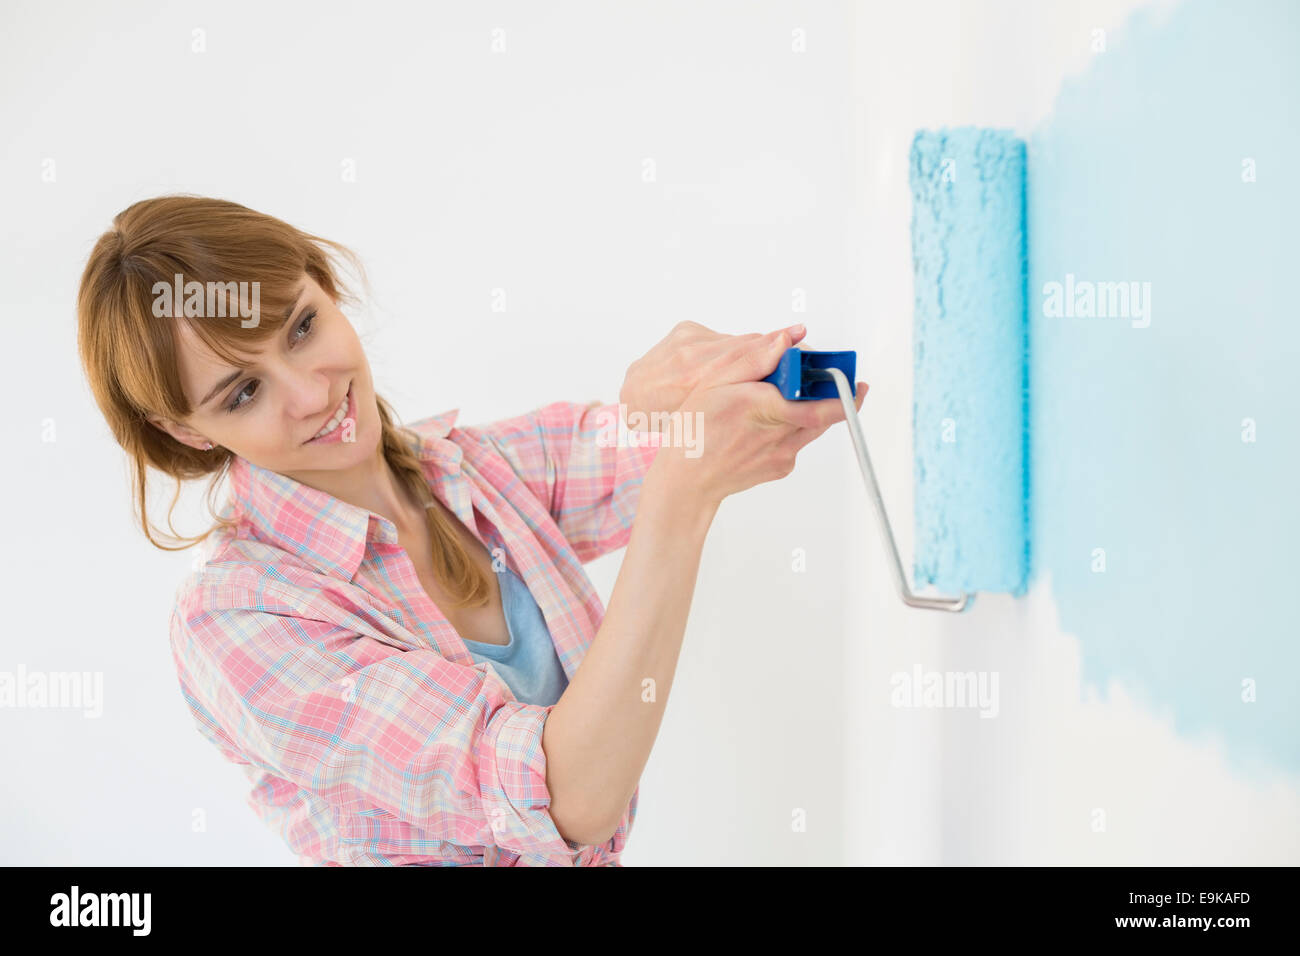 Belle femme painting wall with paint roller Photo Stock